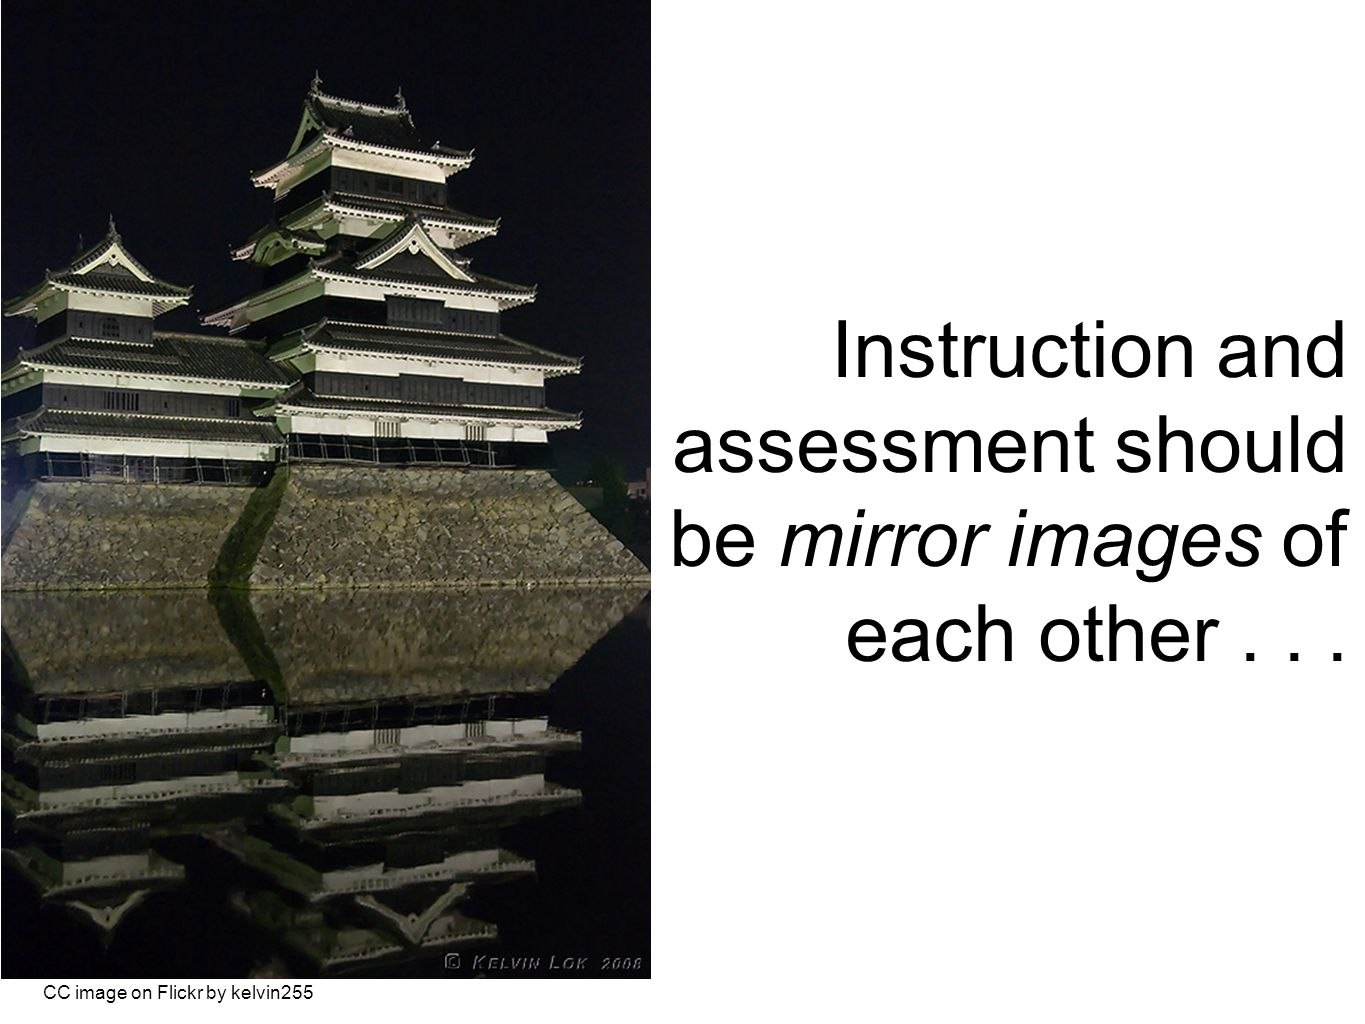 Instruction and assessment should be mirror images of each other... CC image on Flickr by kelvin255